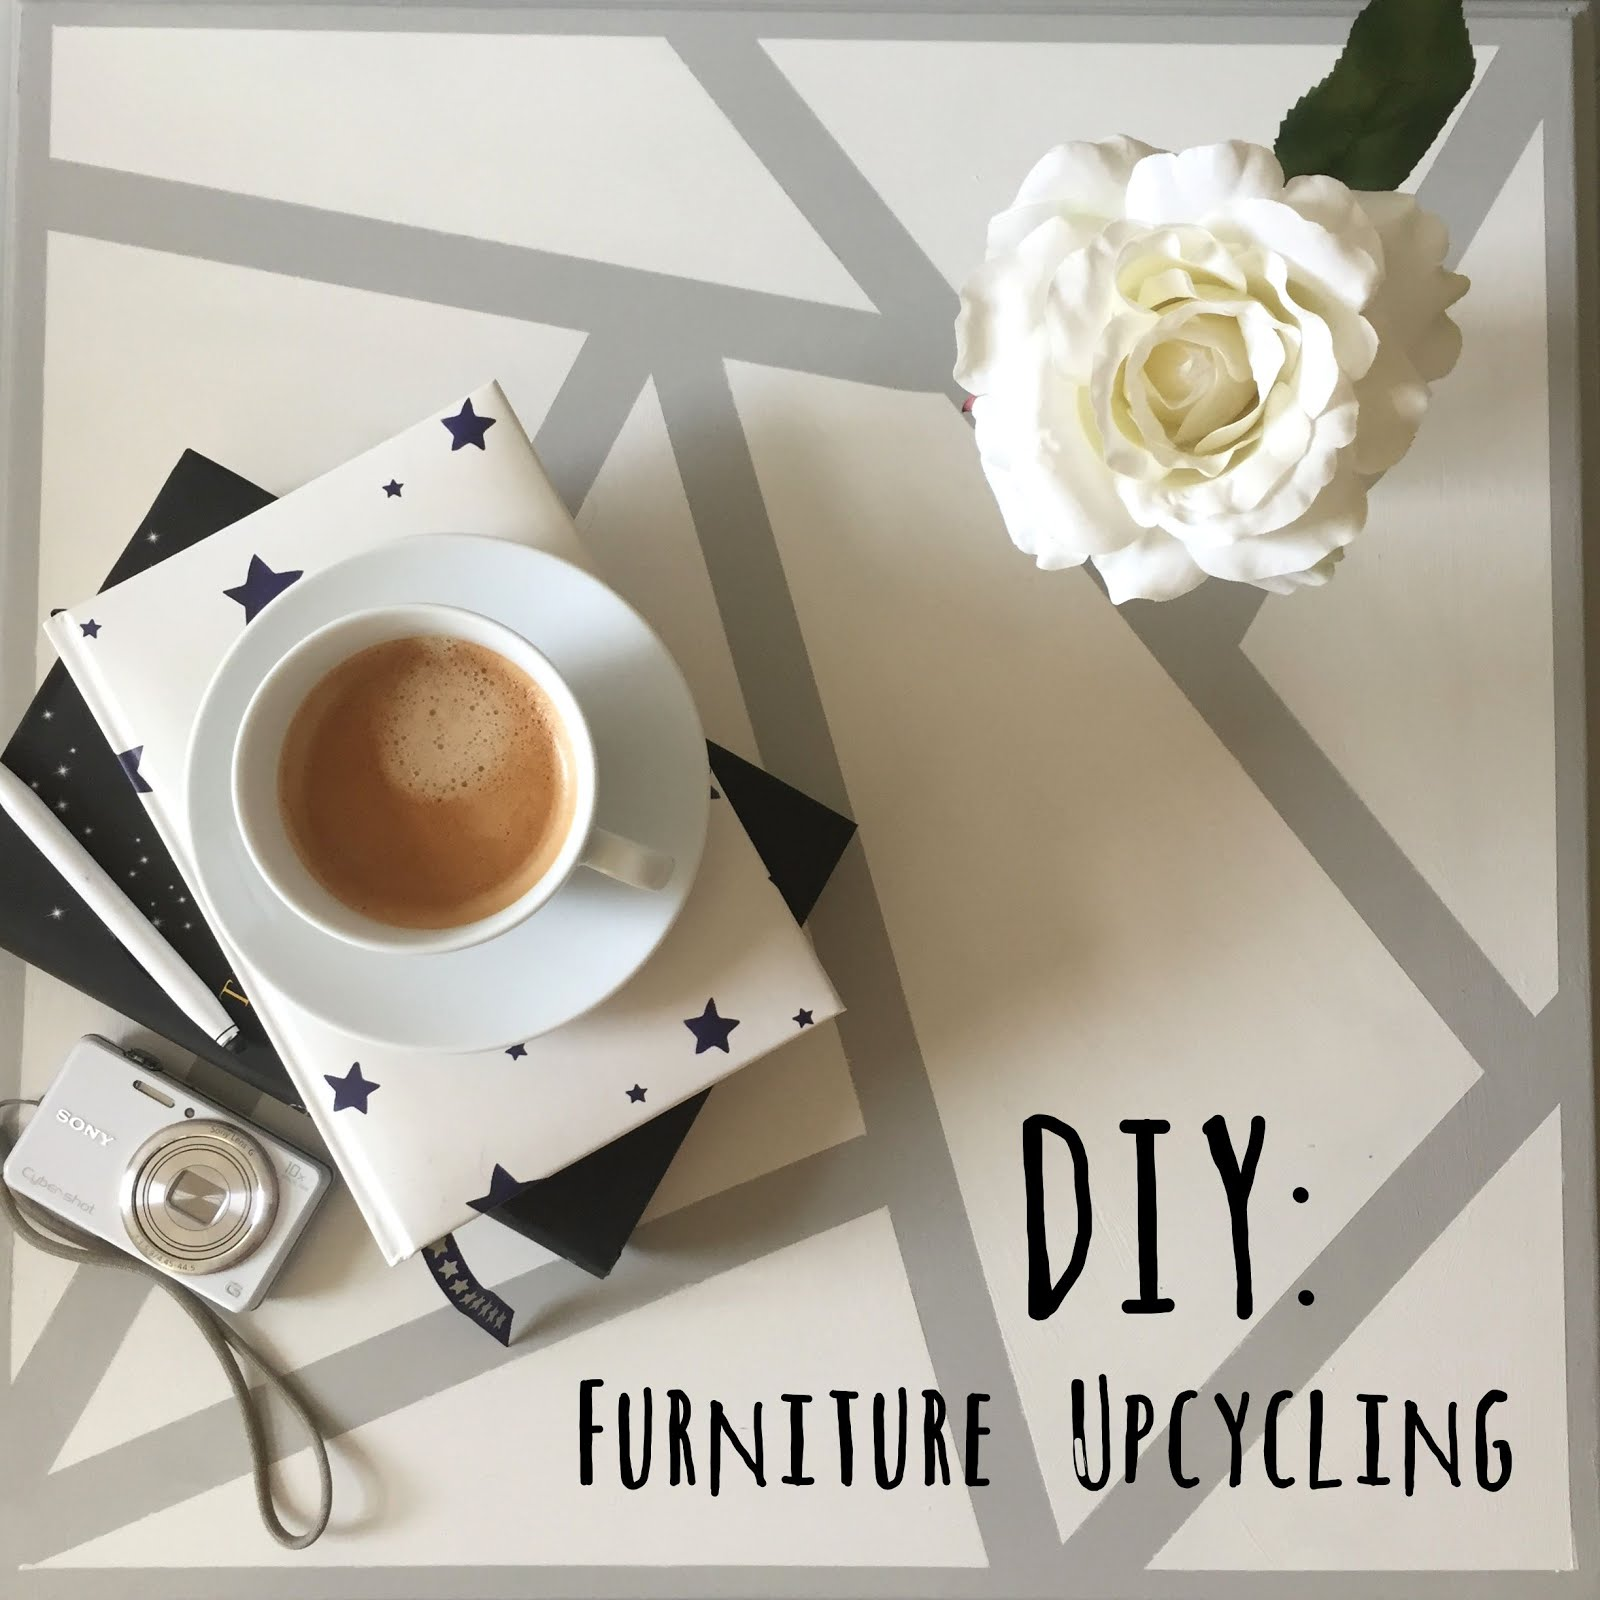 DIY: Table Upcycle